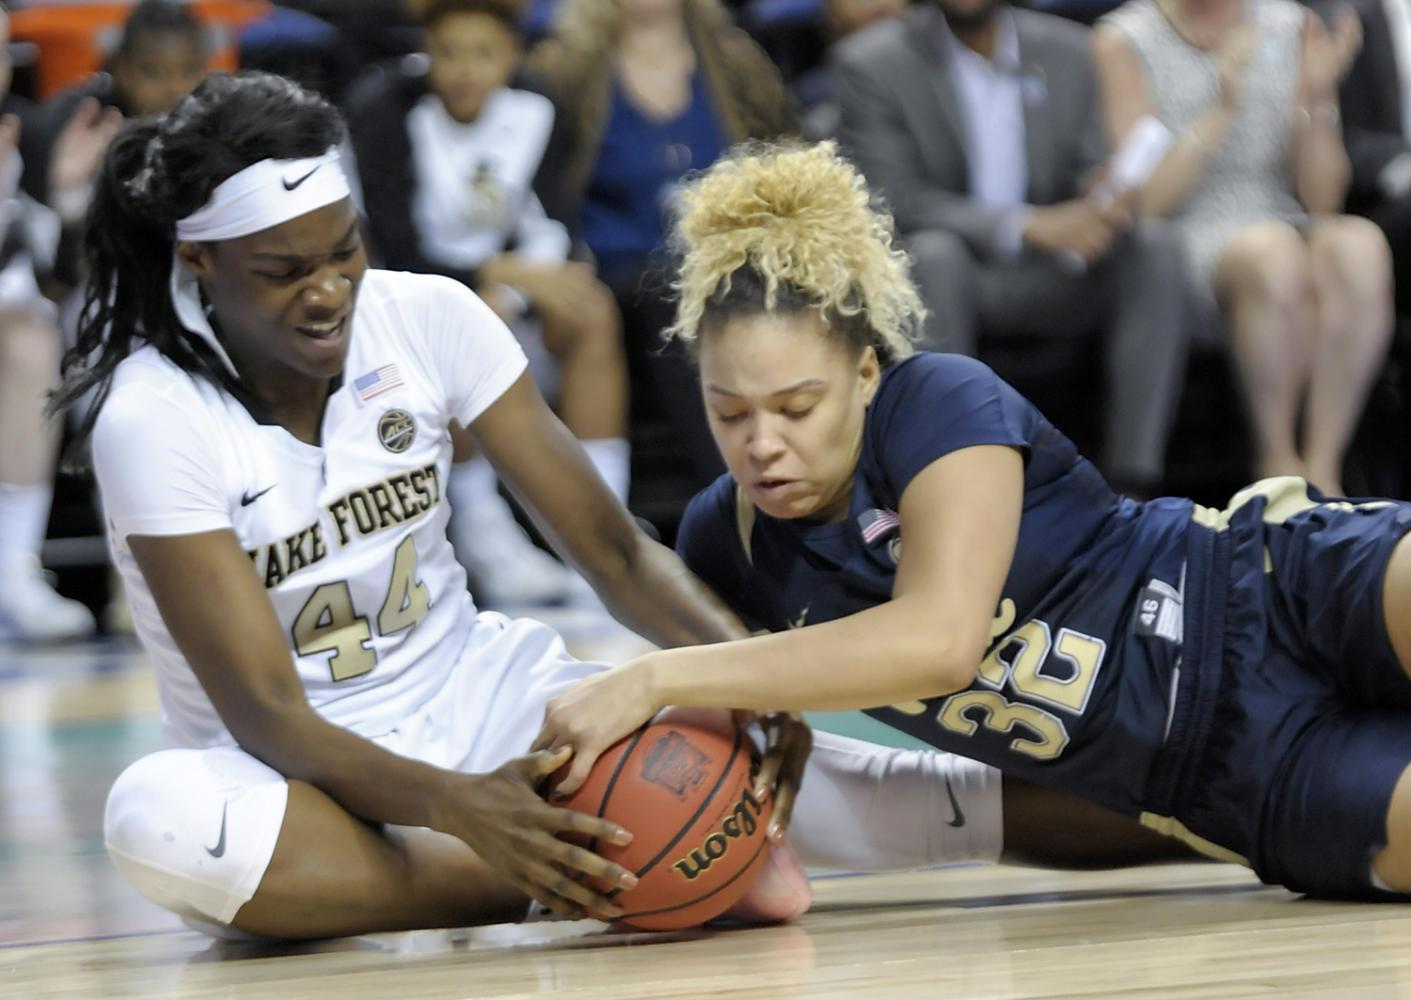 Junior Kalista Walters (32) fights for a loose ball against Wake Forest's Ona Udoh (44) in Pitt's 72-38 loss to Wake Forest Wednesday night. (Photo courtesy of Pitt Athletics)